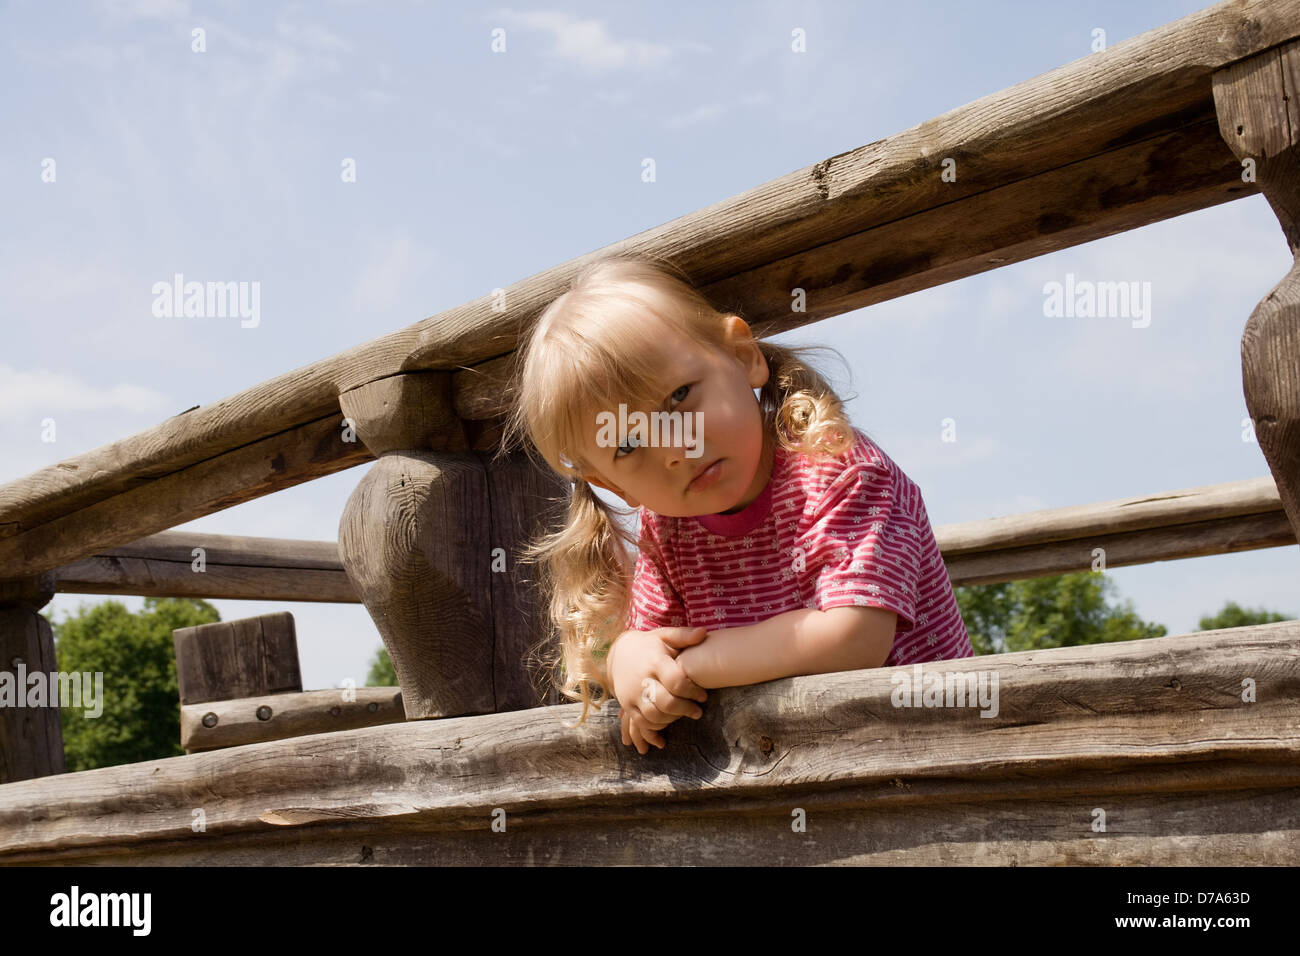 Angry little girl on the playground - Stock Image